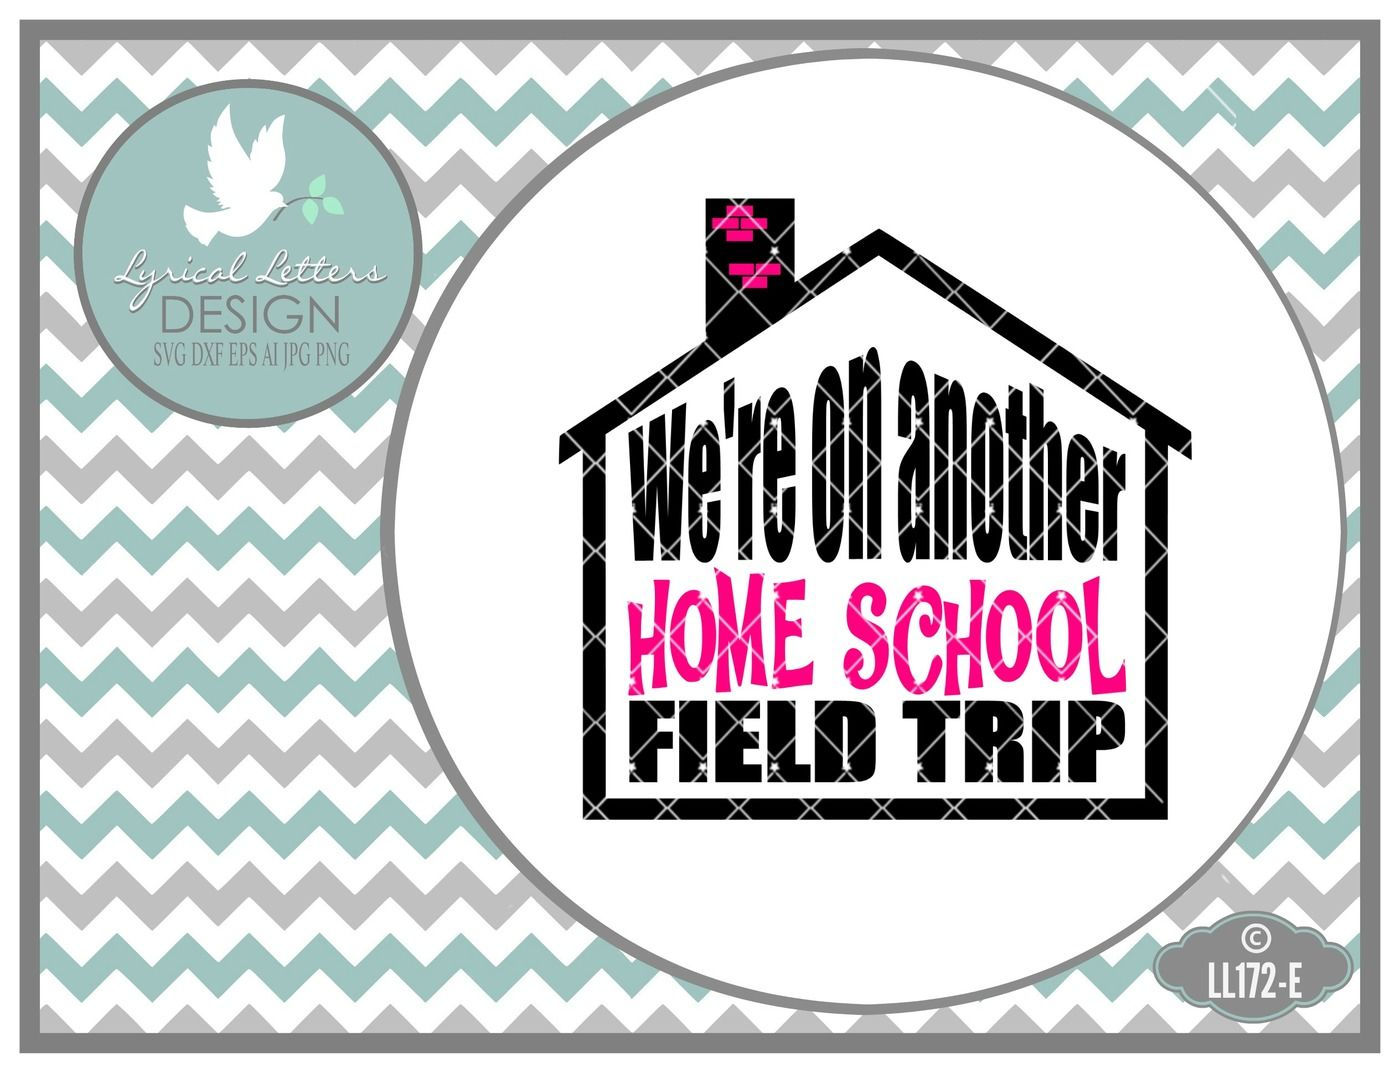 Were on another home school field trip car decal design ll172e cut file in svg dxf eps ai jpg png